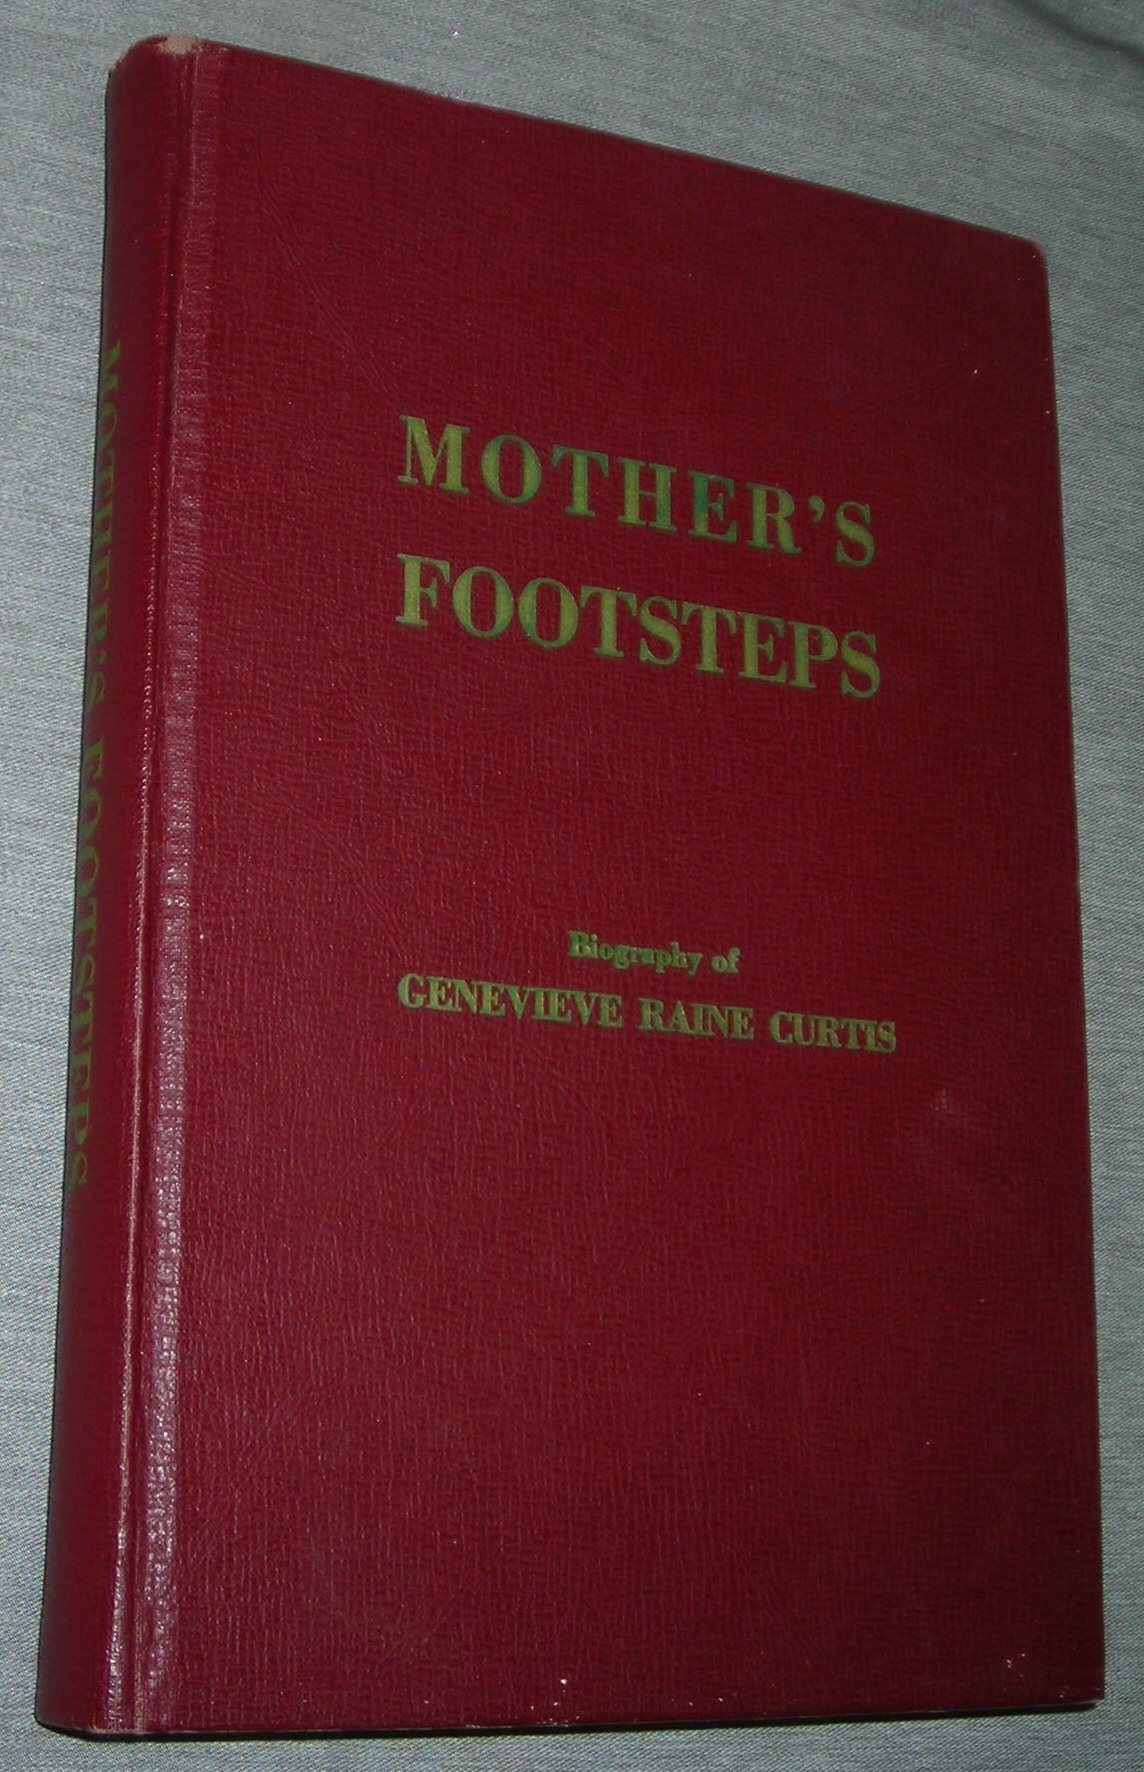 MOTHER'S FOOTSTEPS - Biography of Genevieve Raine Curtis, Curtis, Dr. Lindsey R. (compiler)